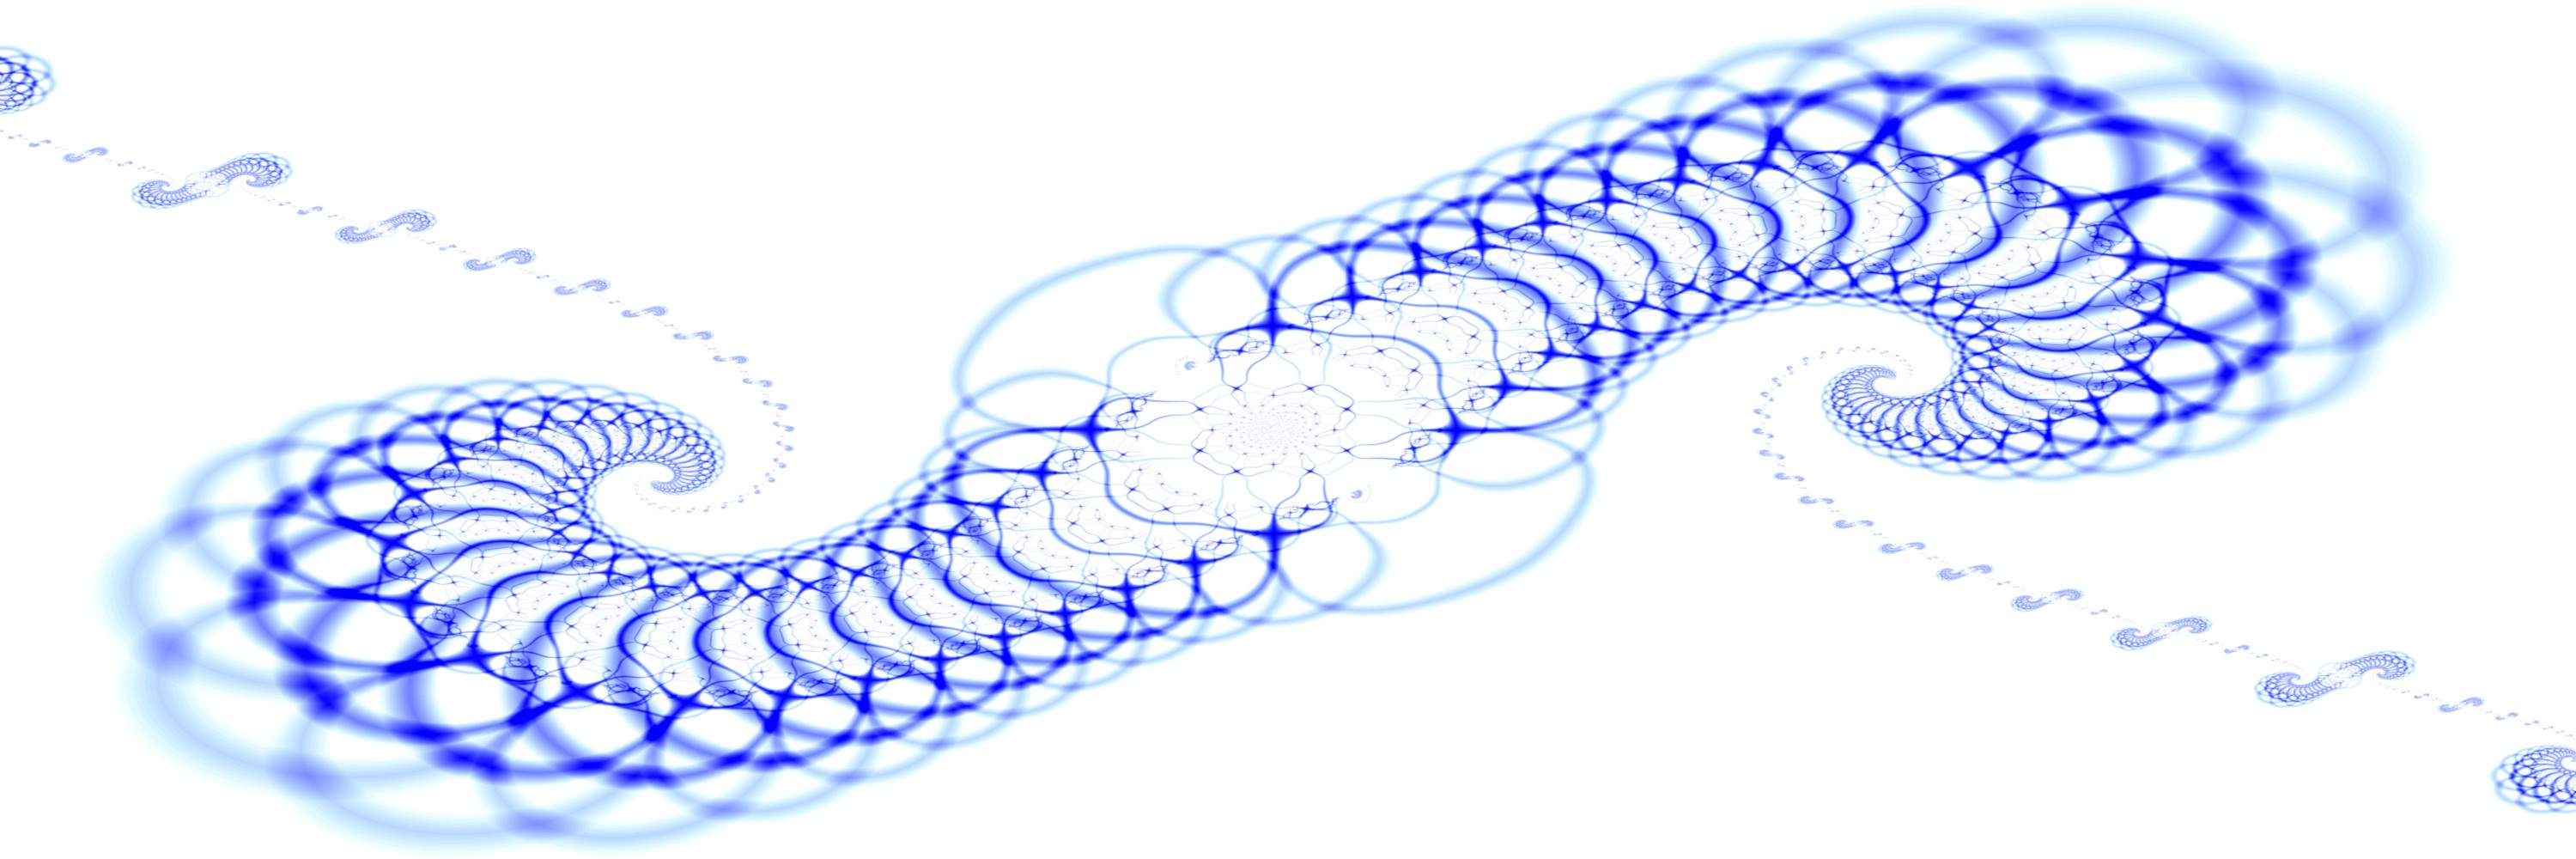 A blue fractal spirals outwards in two directions. Each arm reaches out to a sequence of scaled versions of the spiral.